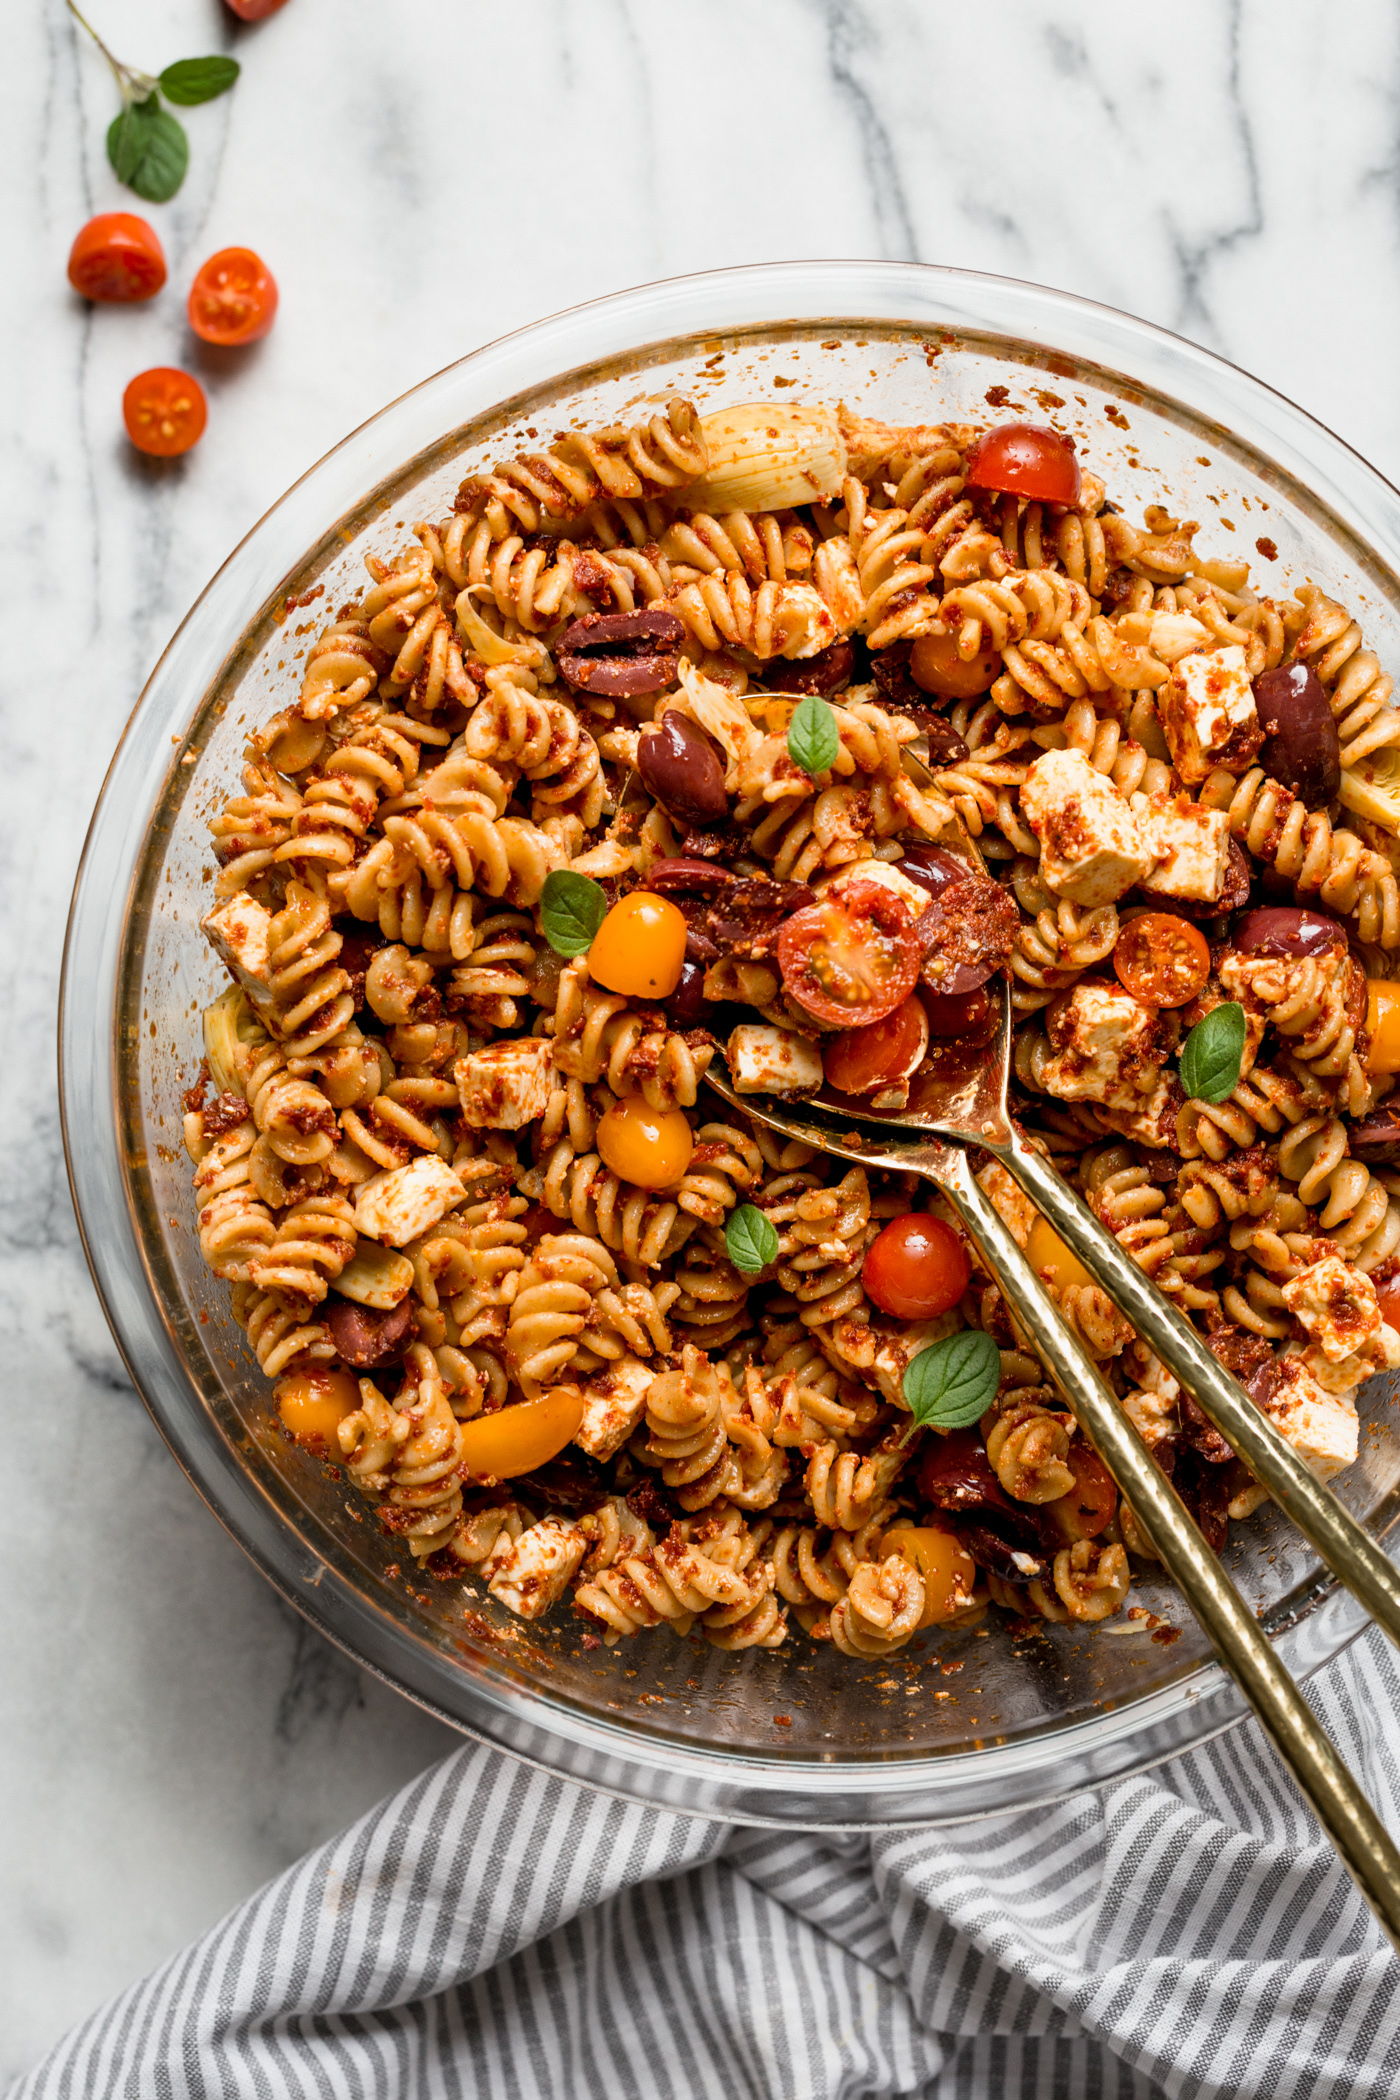 Sundried Tomato Pasta Salad Only 6 Ingredients Plays Well